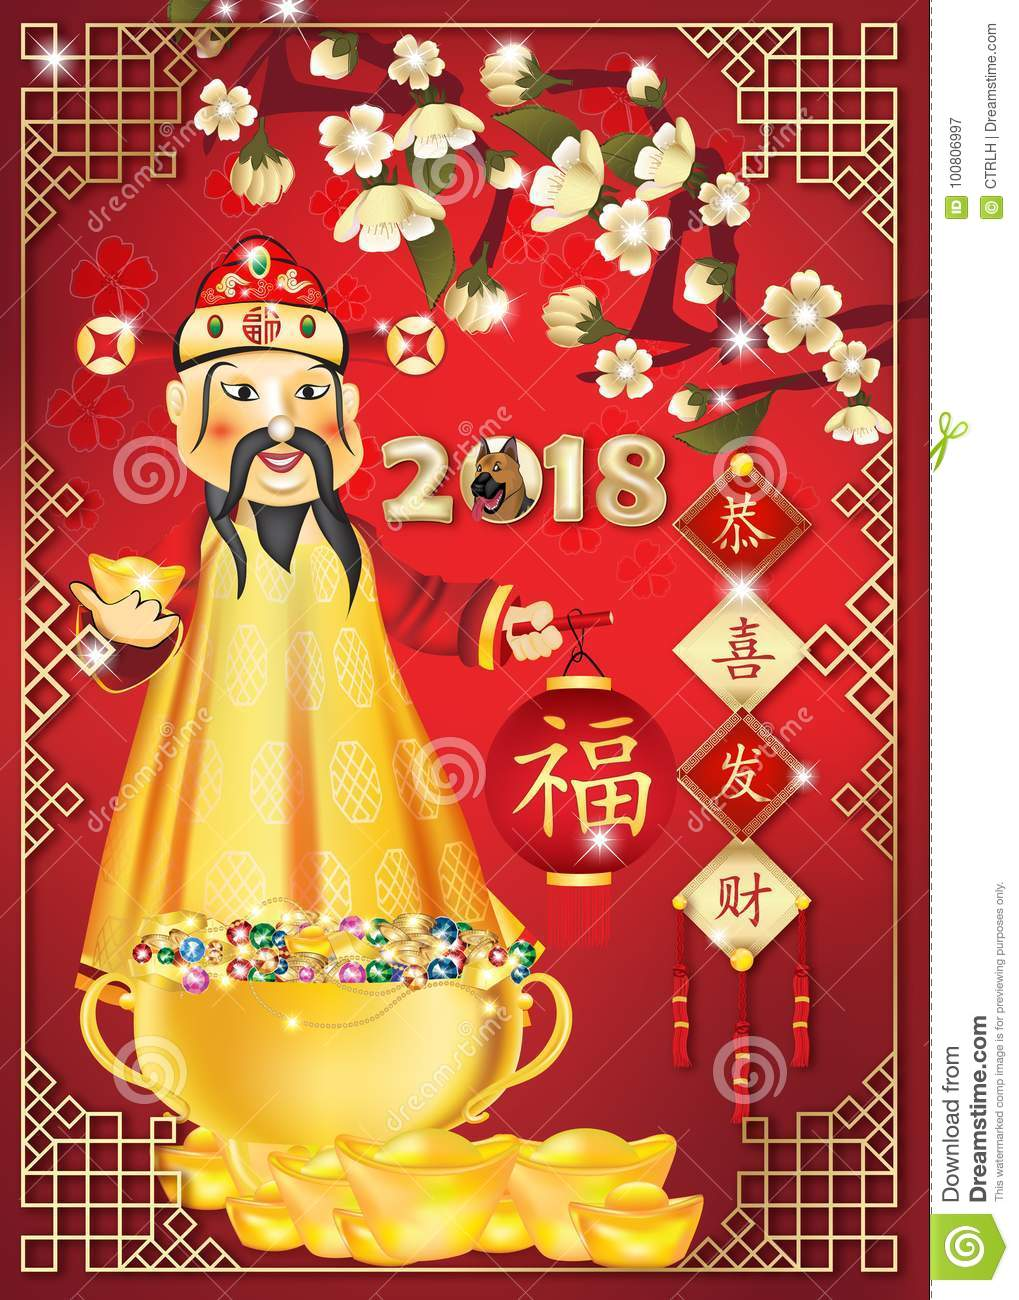 Business chinese new year 2018 greeting card stock illustration business chinese new year 2018 greeting card kristyandbryce Choice Image